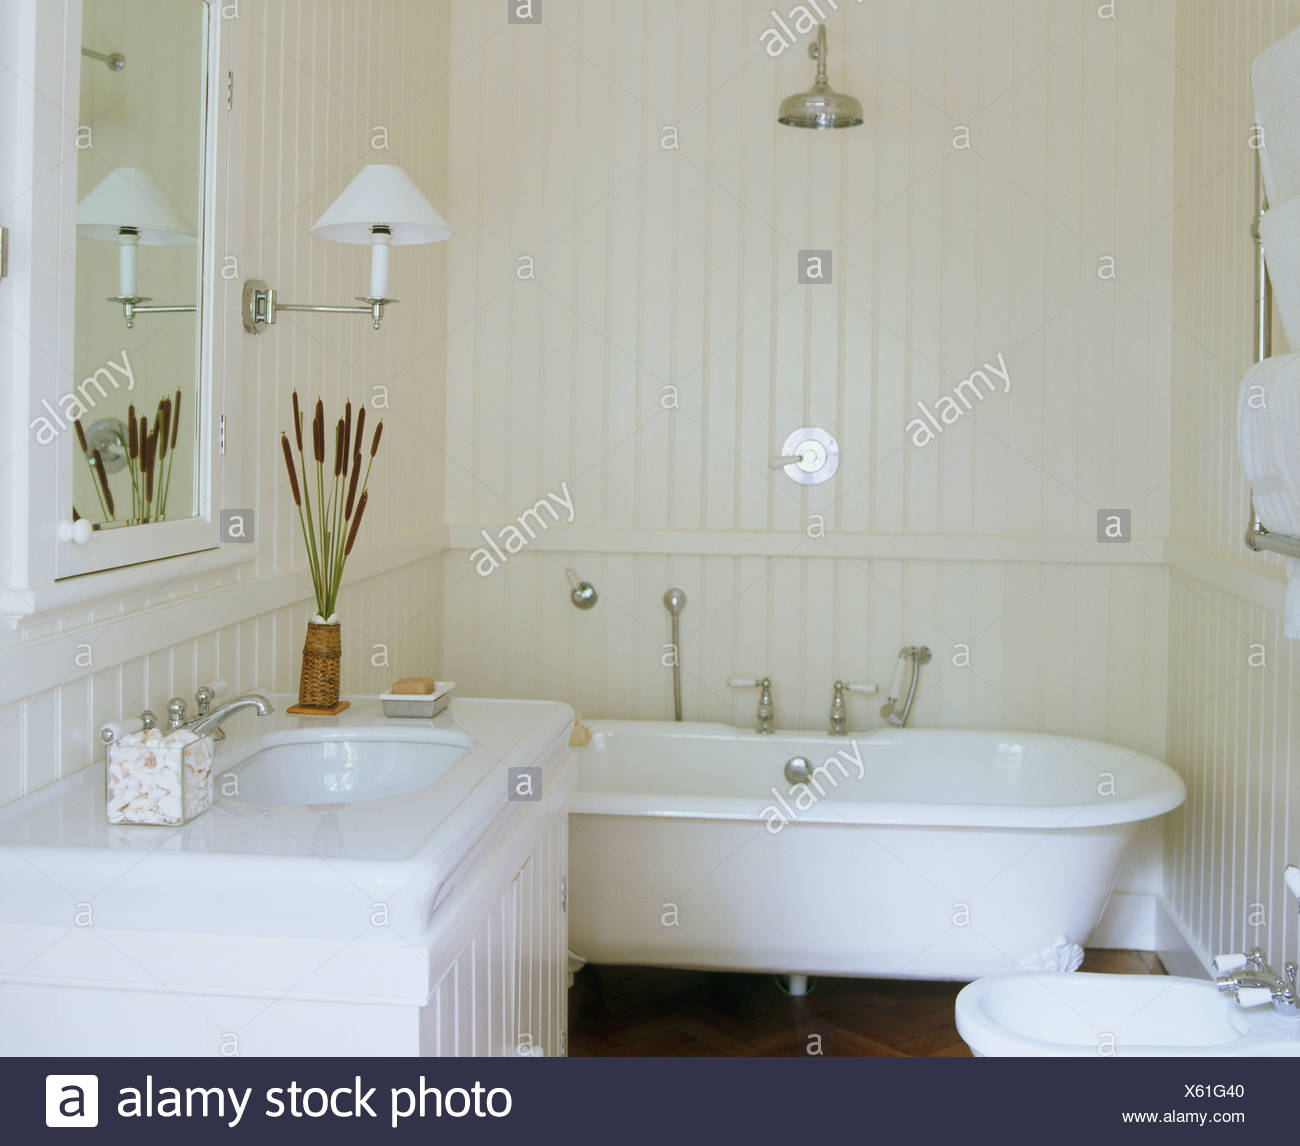 Chrome shower above roll-top bath in white bathroom with white ...